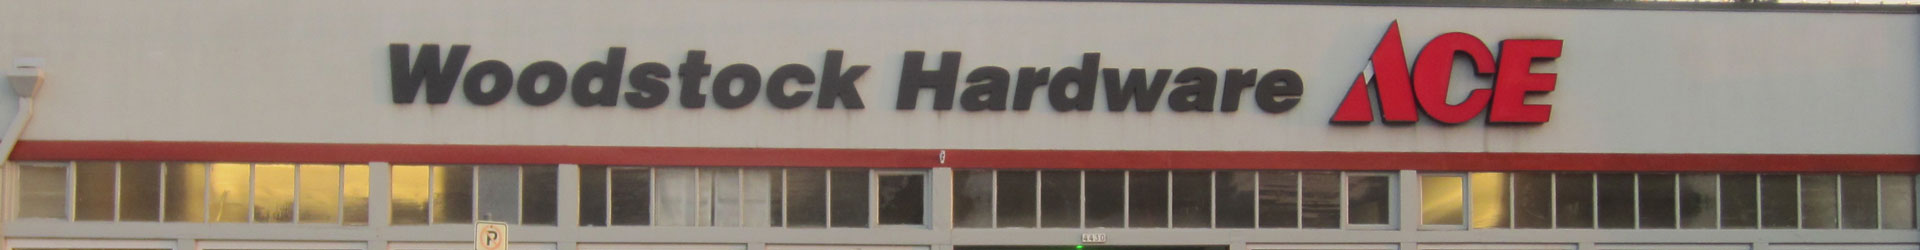 Woodstock Hardware – Locally owned and operated since 1950